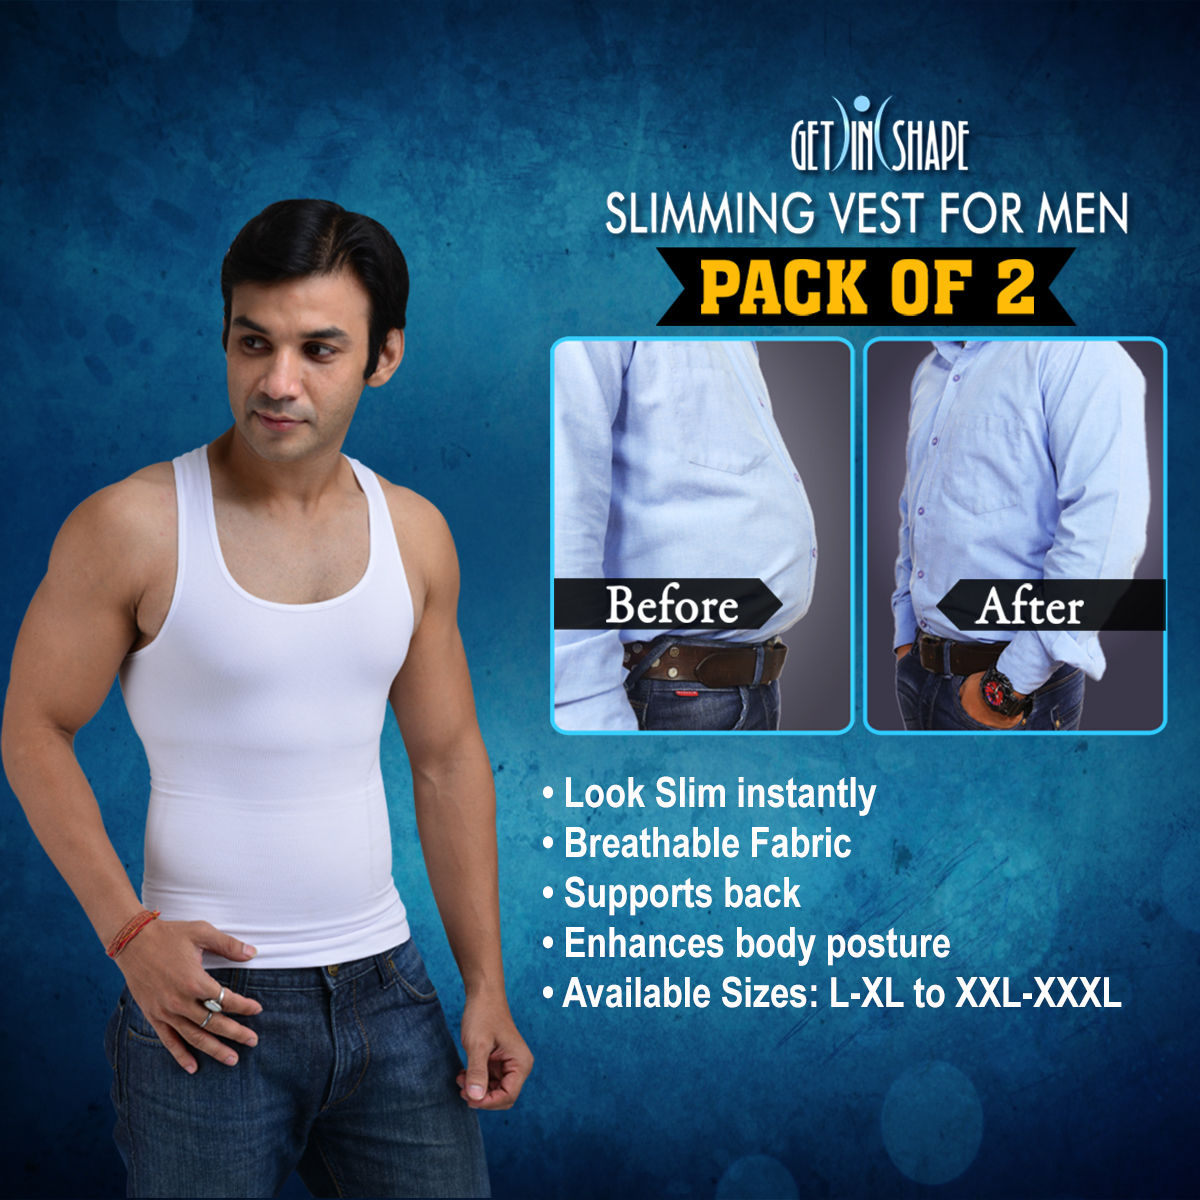 6fc8a7681e Buy Get In Shape Slimming Vest for Men - Pack of 2 Online at Best Price in  India on Naaptol.com